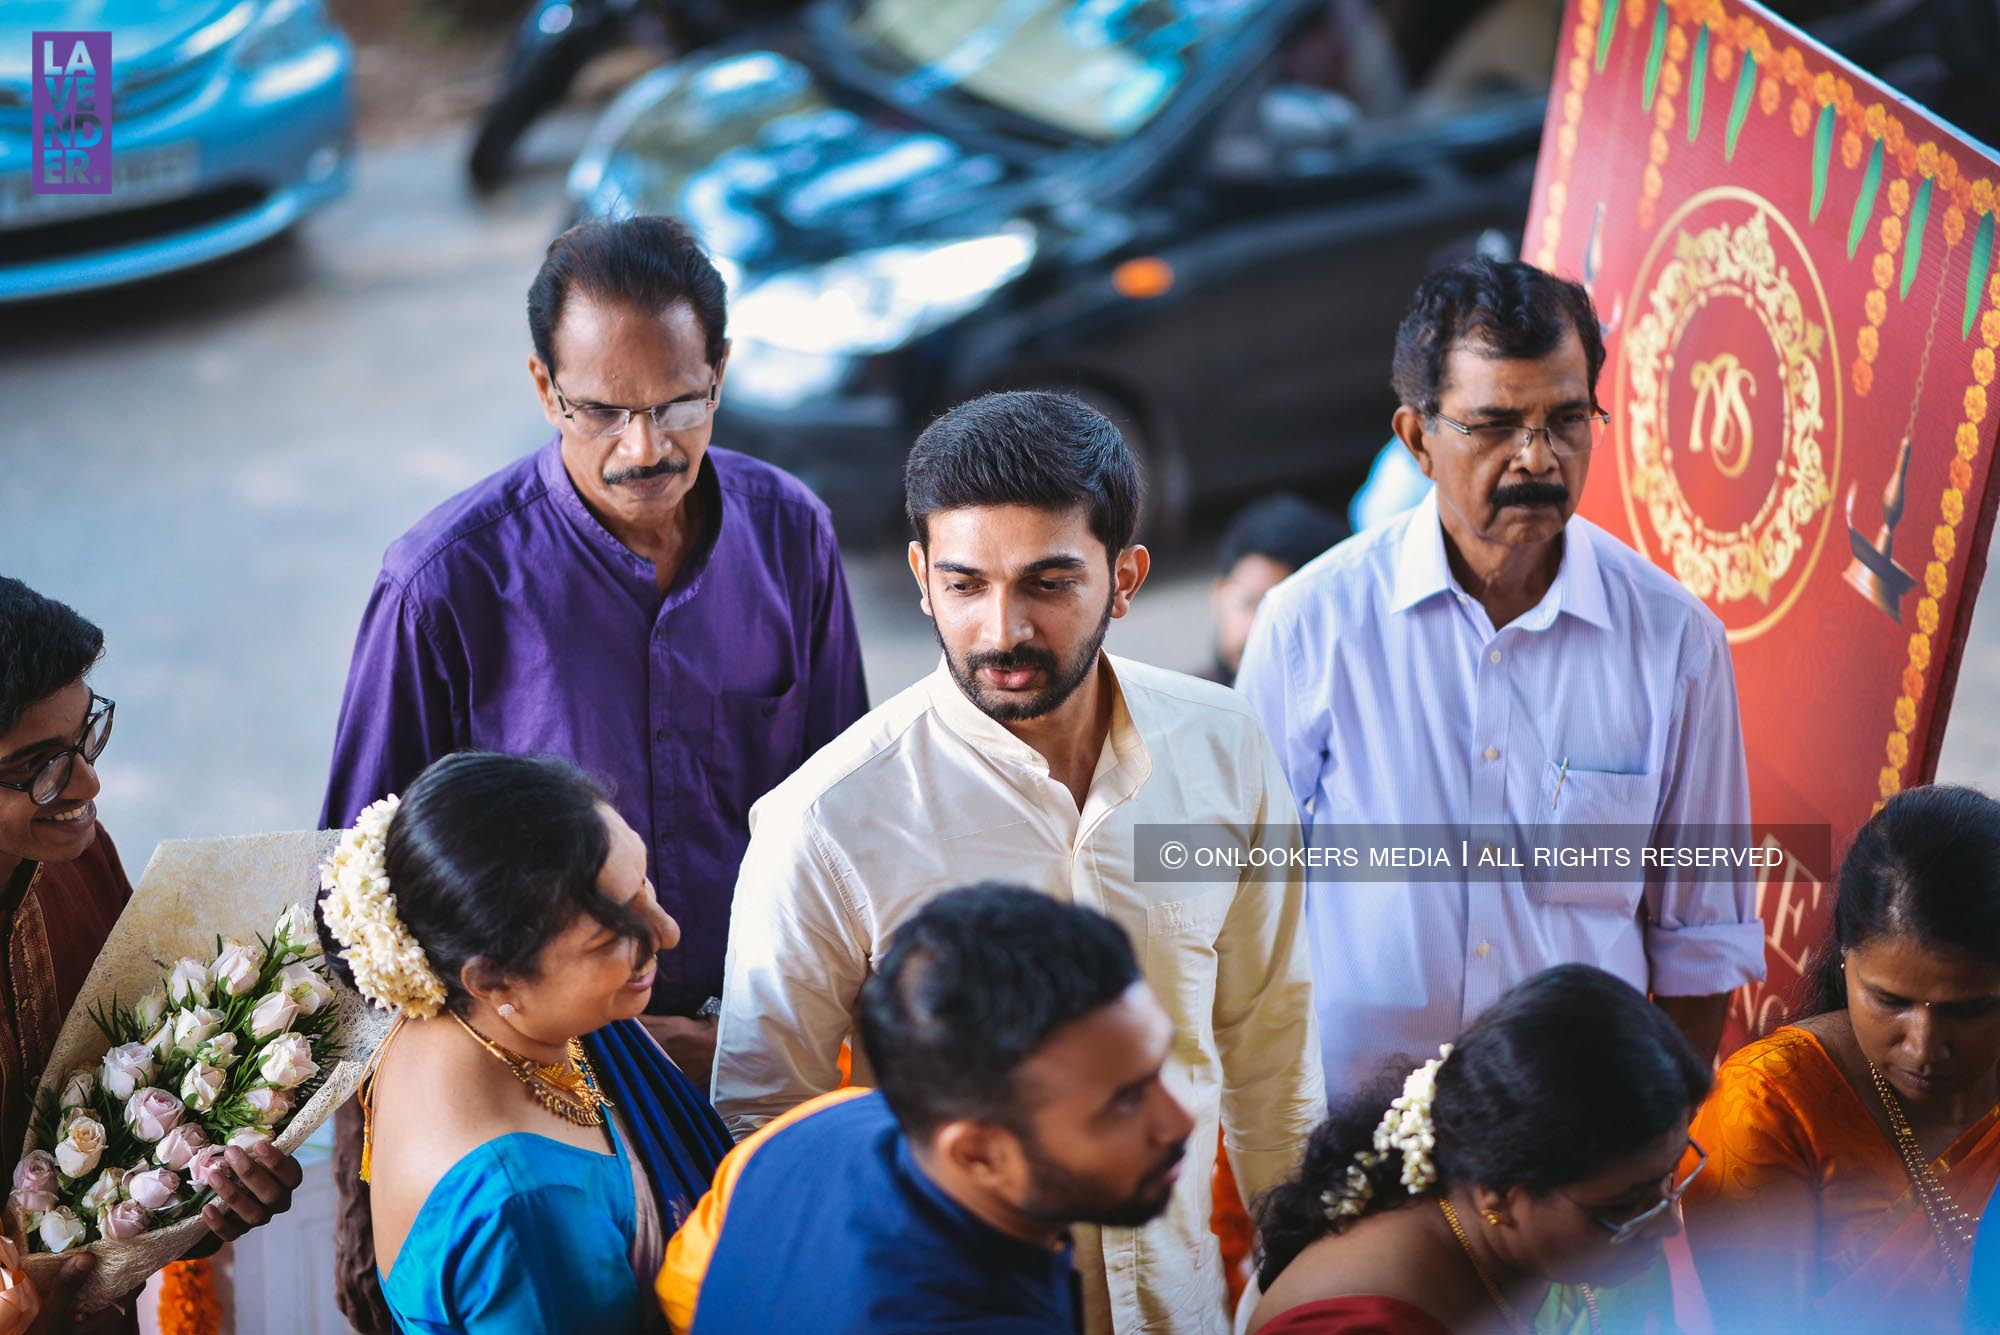 http://onlookersmedia.in/wp-content/uploads/2018/05/sreejith-vijay-wedding-stills-images-20.jpg